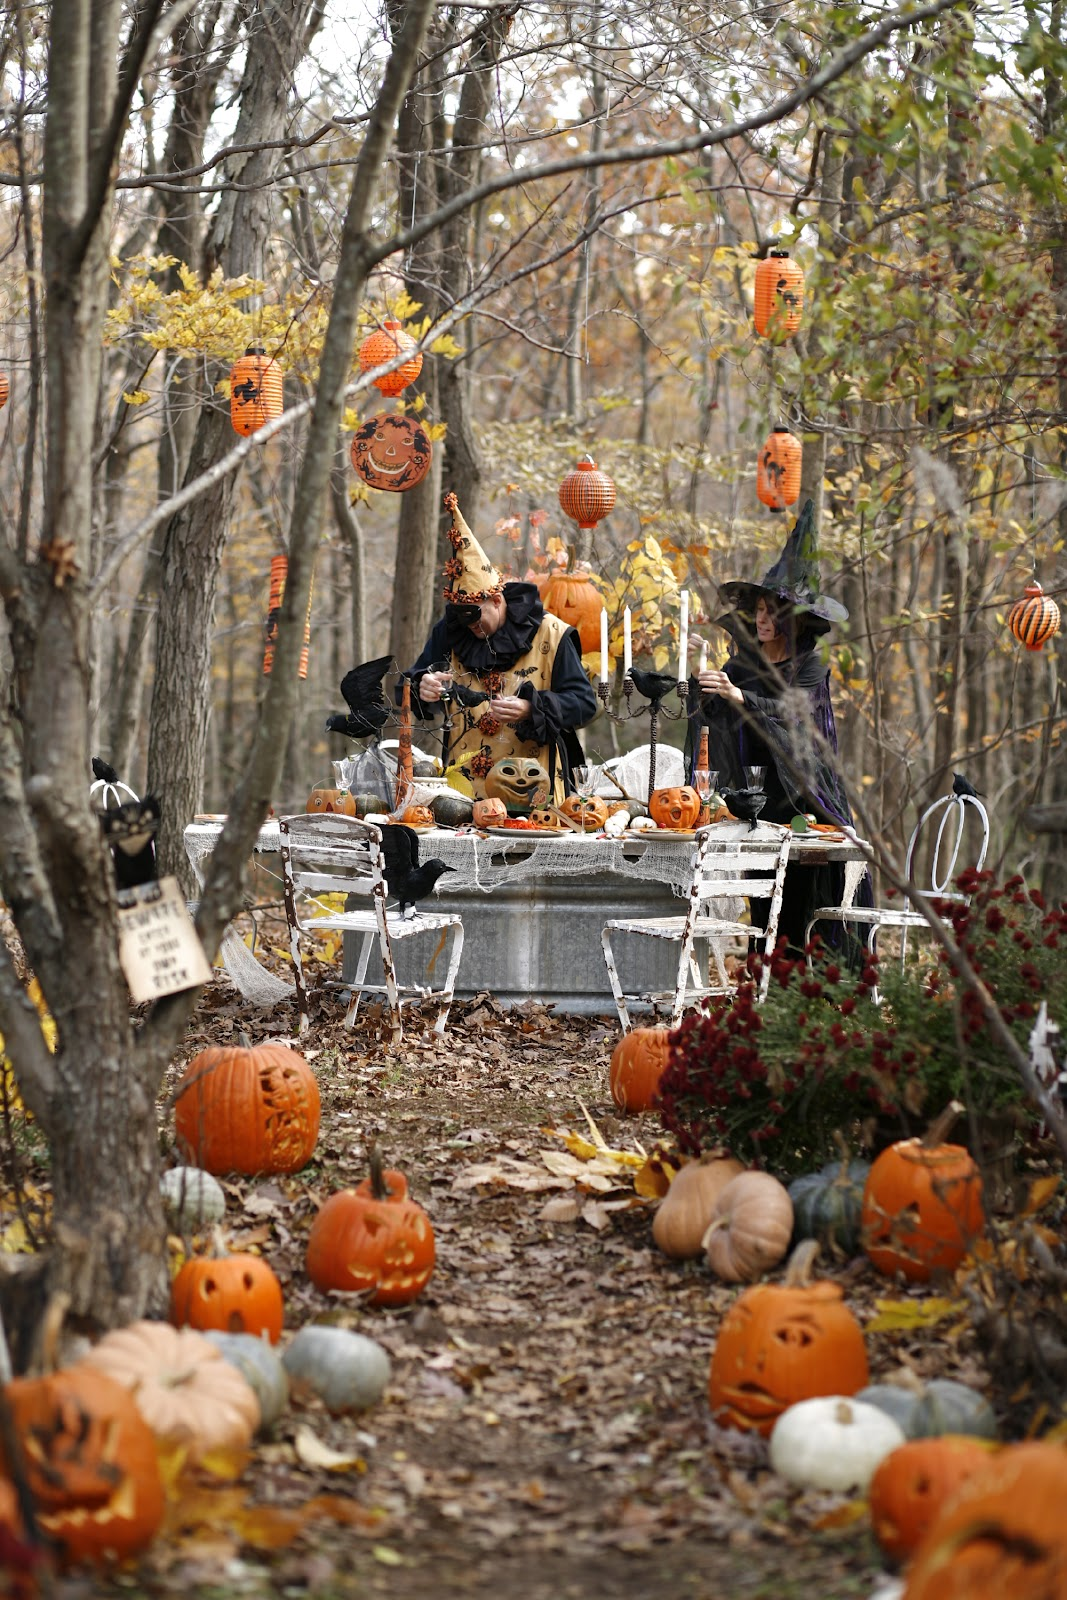 karin lidbeck celebrating october in style with do it yourself ideas